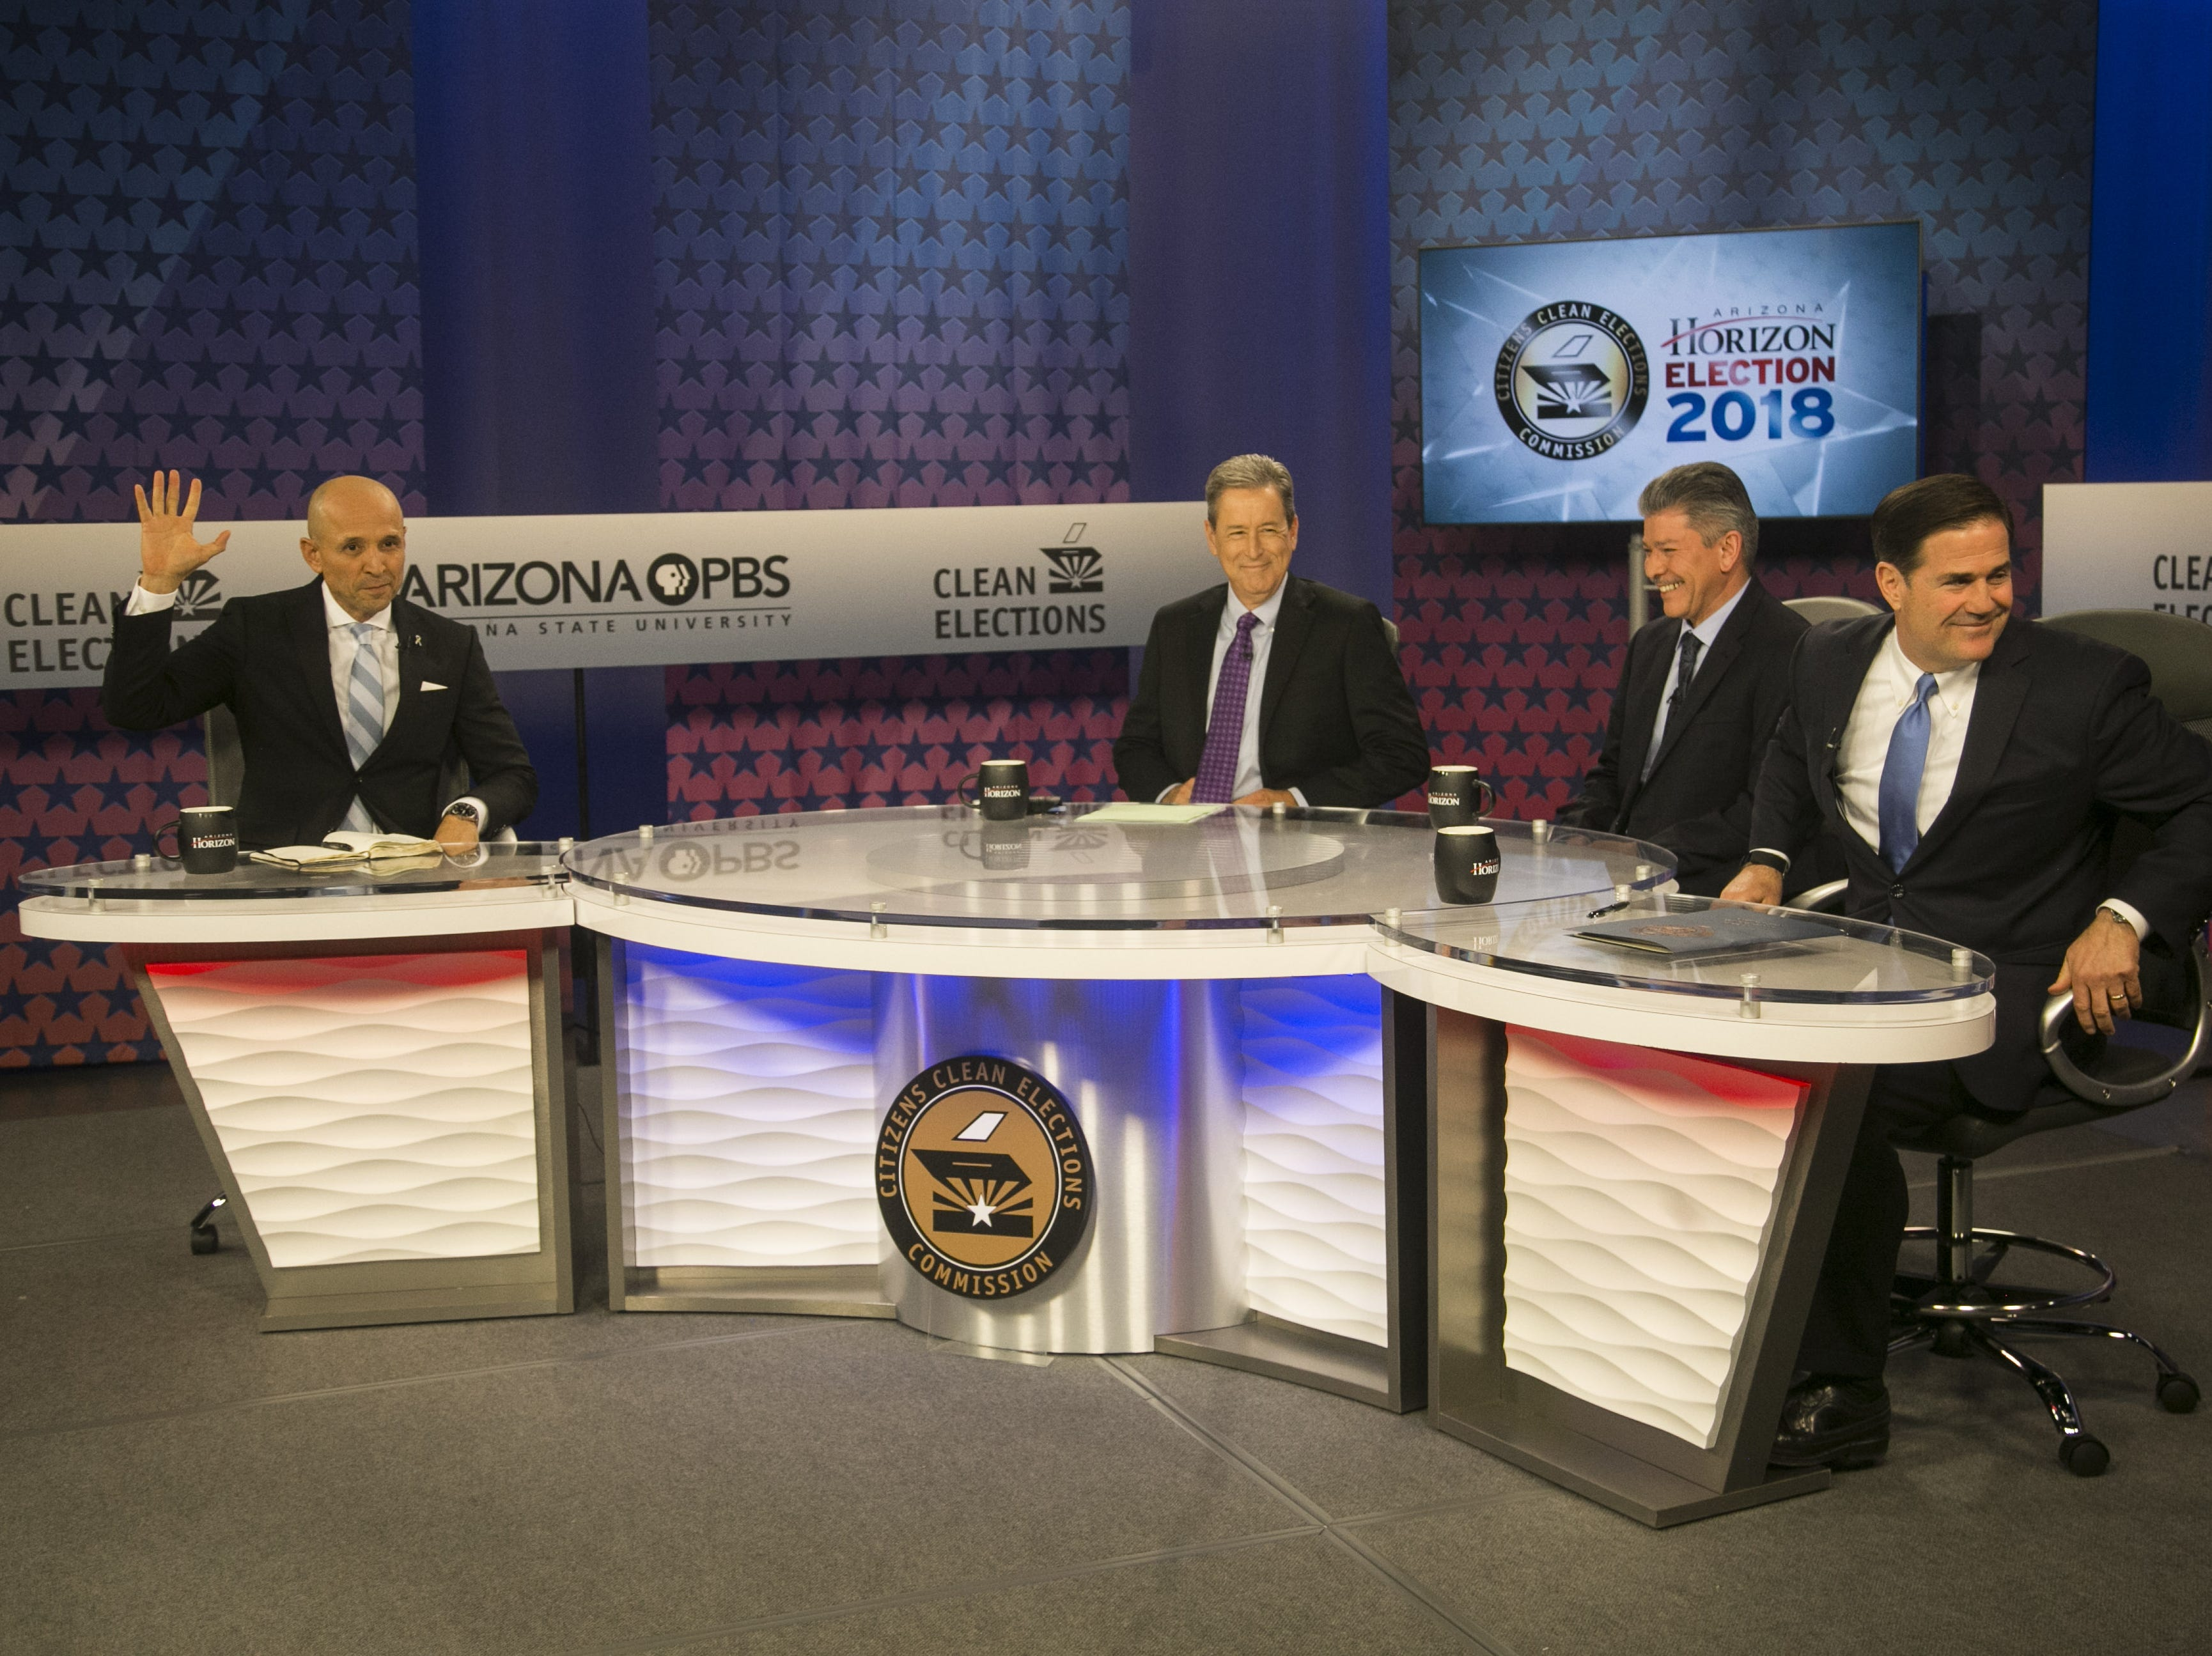 Gubernatorial candidates David Garcia (left), Angel Torres (second from right), and Gov. Doug Ducey (right) prep for their debate with host Ted Simons (center) before the gubernatorial debate on PBS inside ASU's Walter Cronkite School of Journalism and Mass Communication in Phoenix on Sept. 24, 2018.